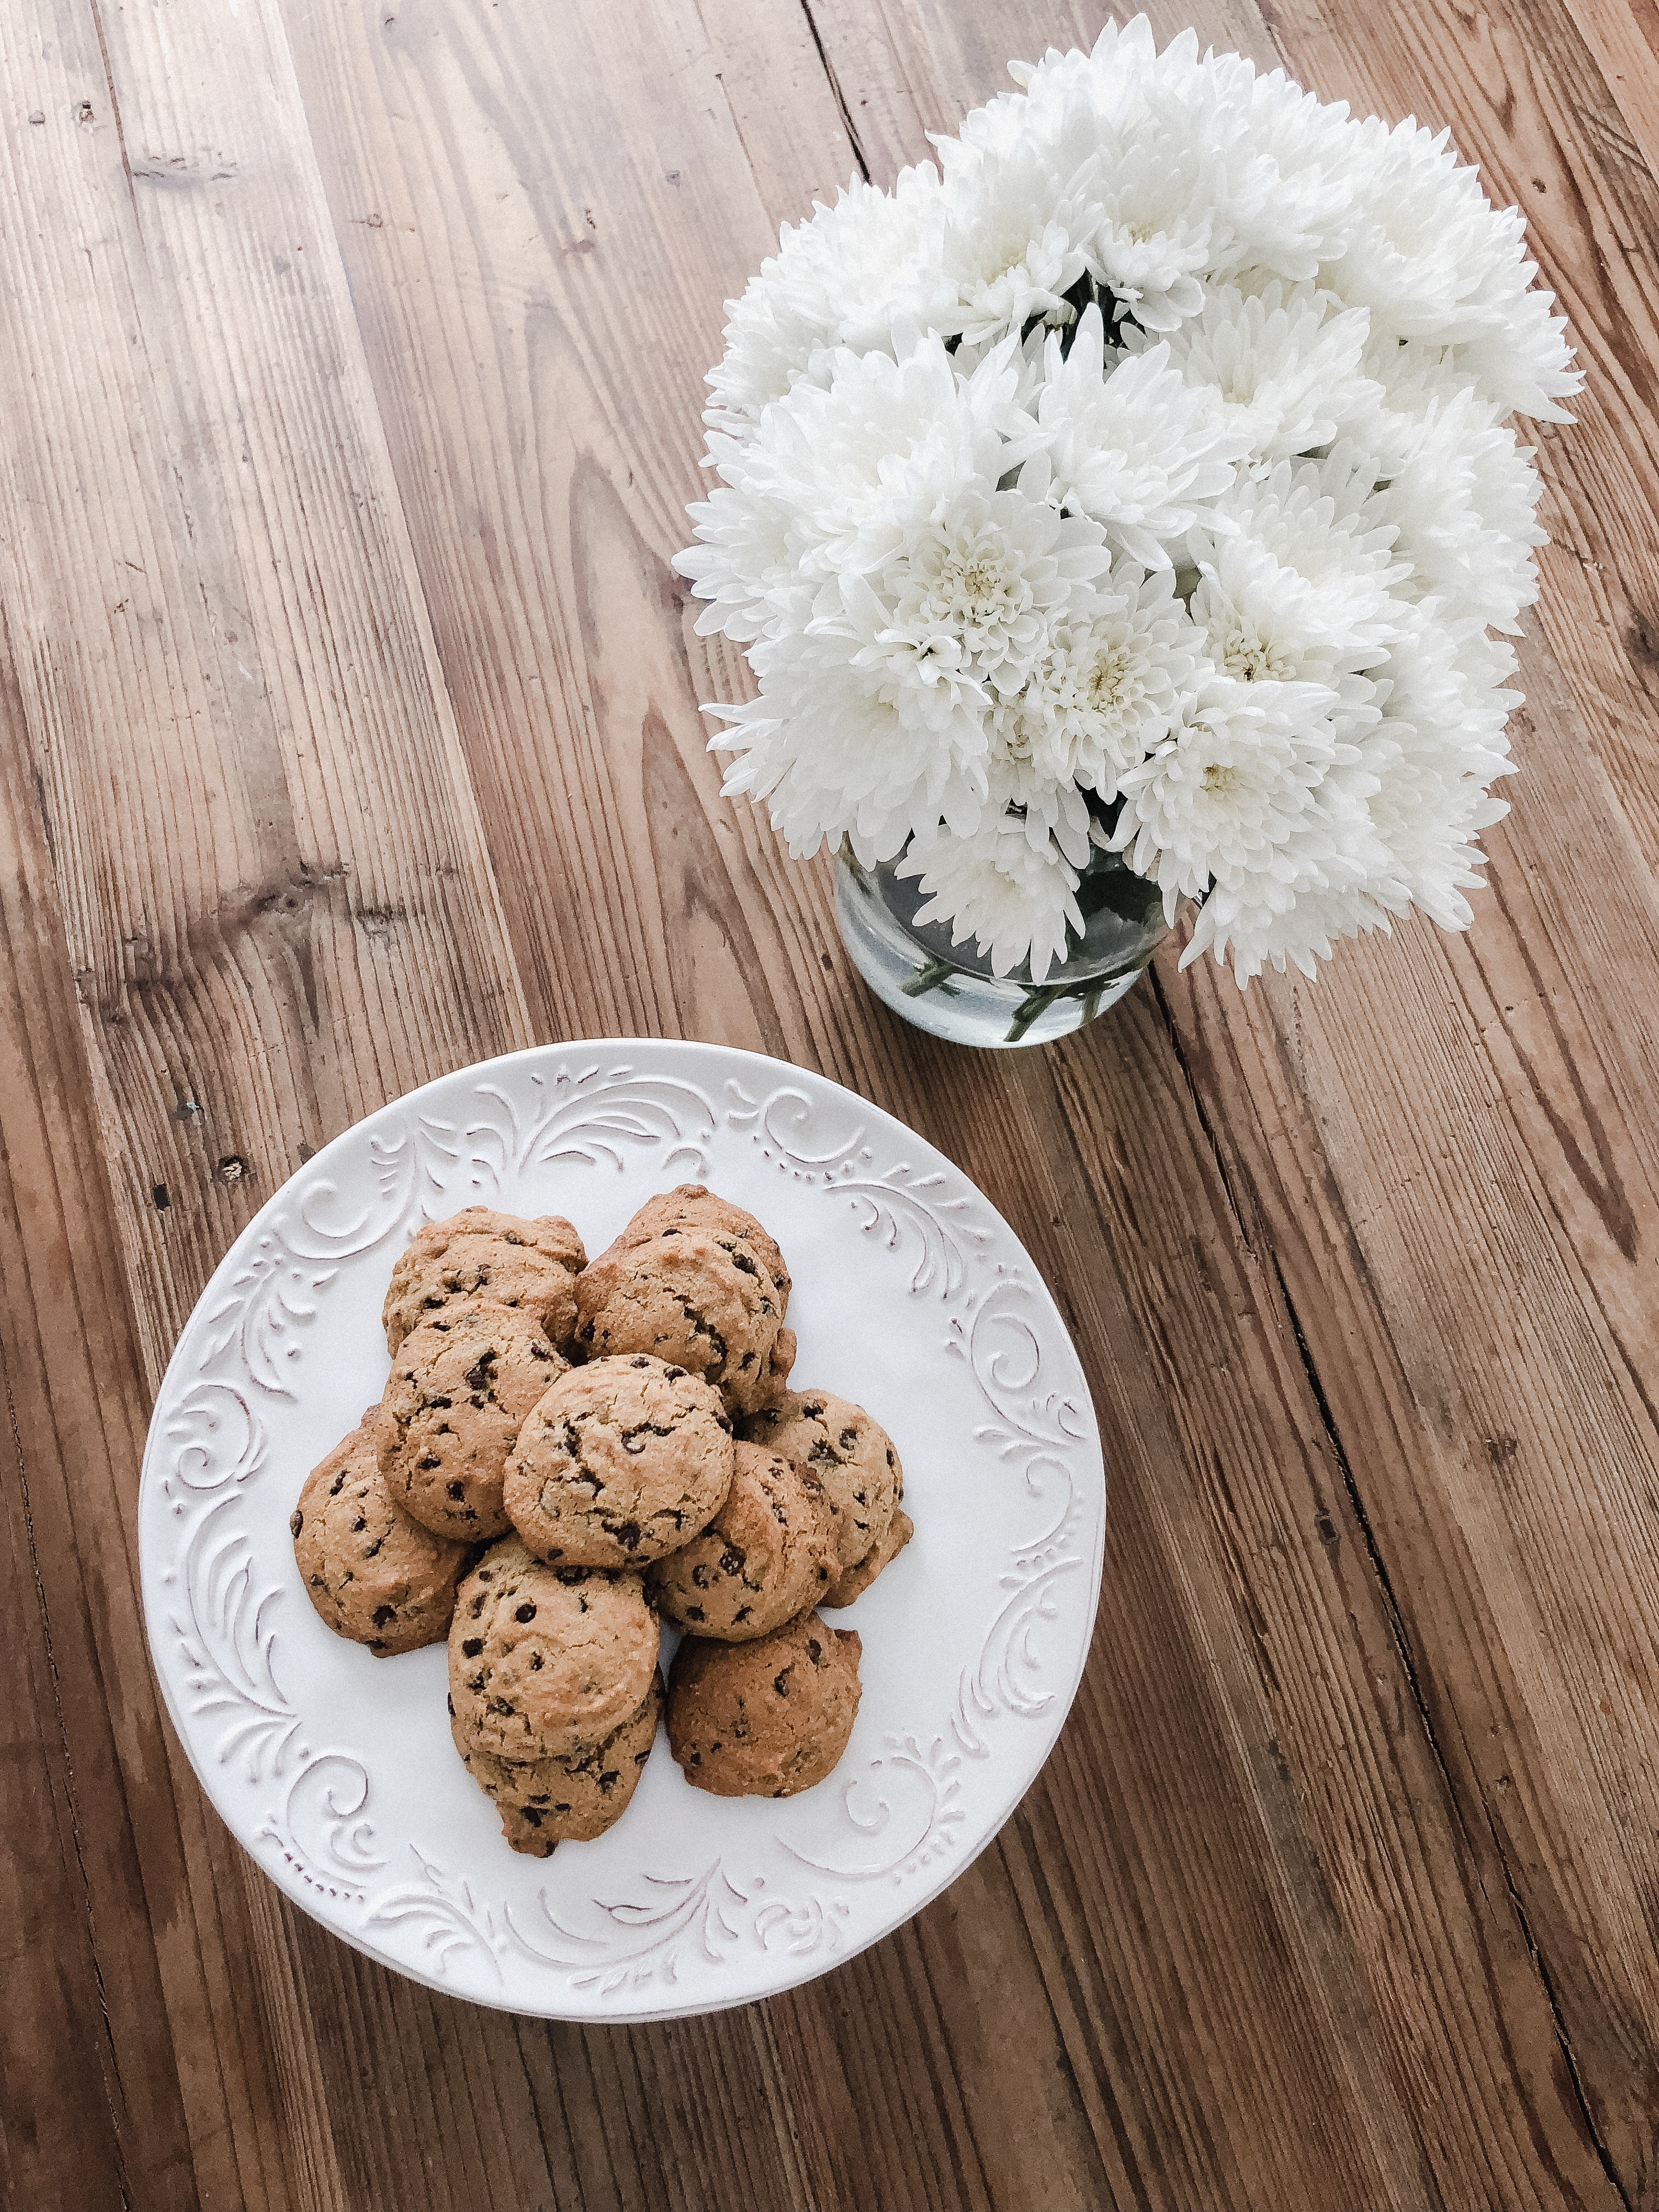 Life and style blogger Lauren McBride shares her Paleo Chocolate Chip cookie recipe that is so delicious you won't believe it's paleo!